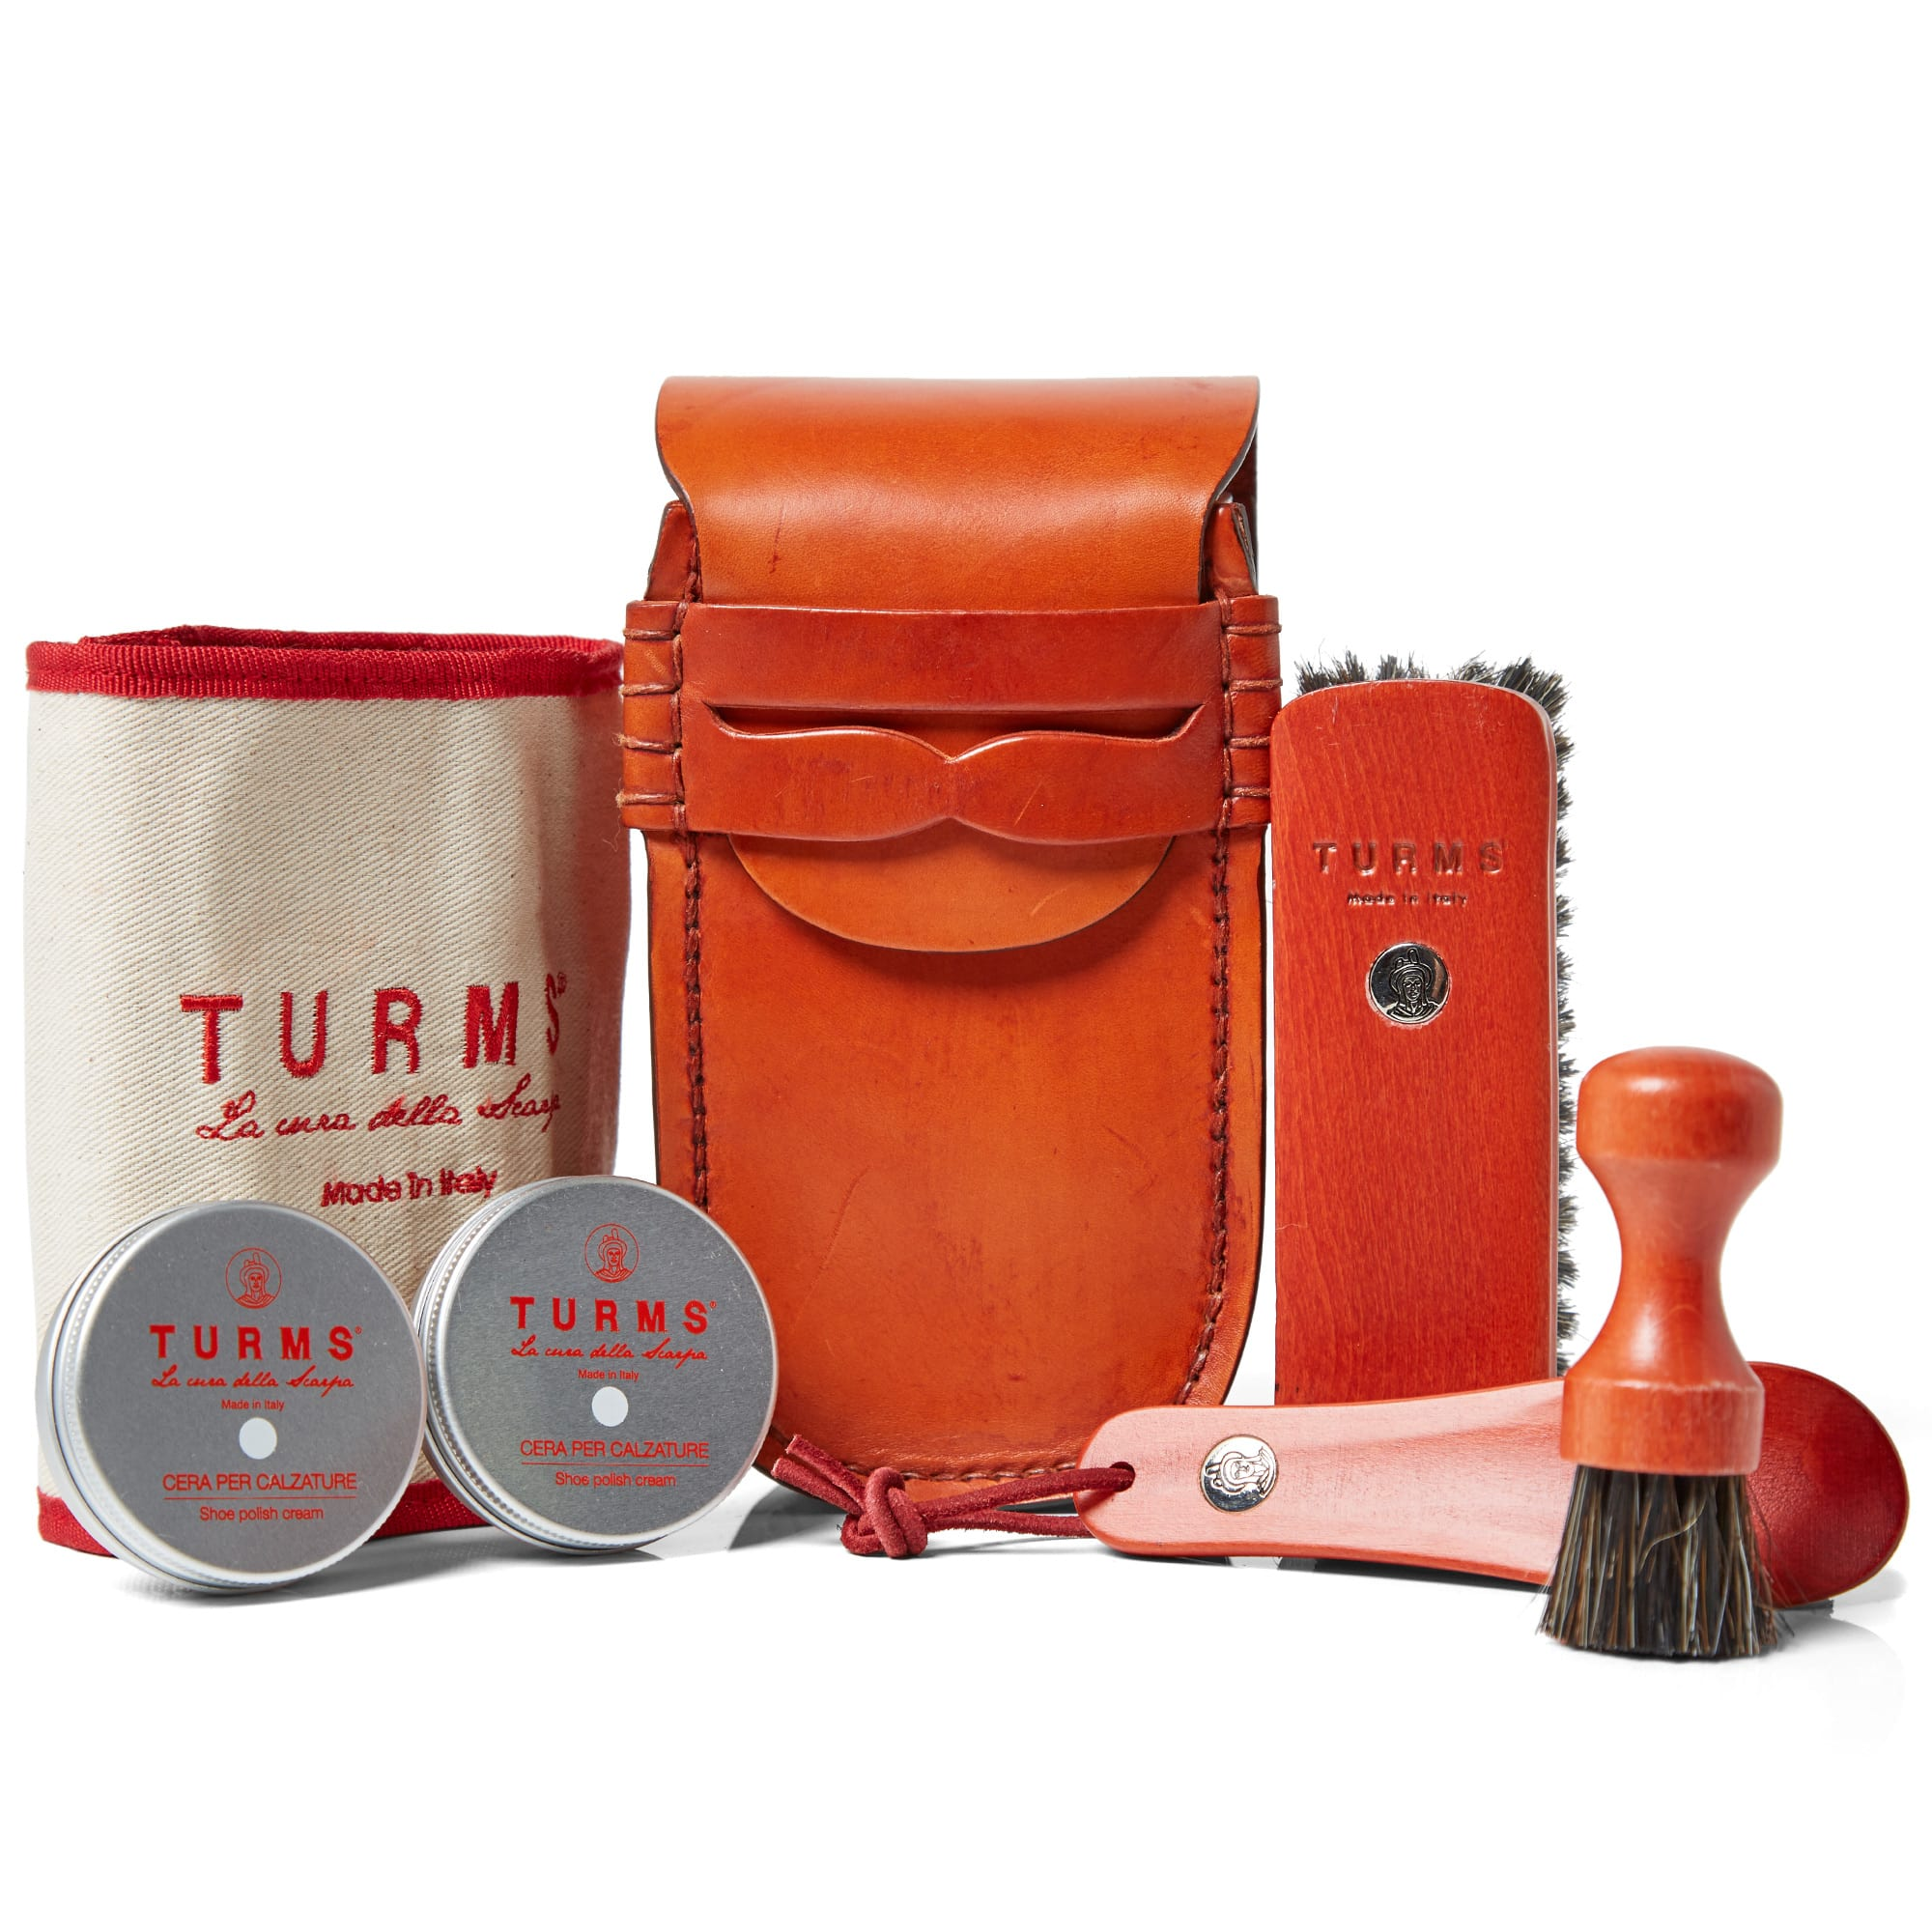 TURMS Turms Hand Stitched College Care Kit in Red